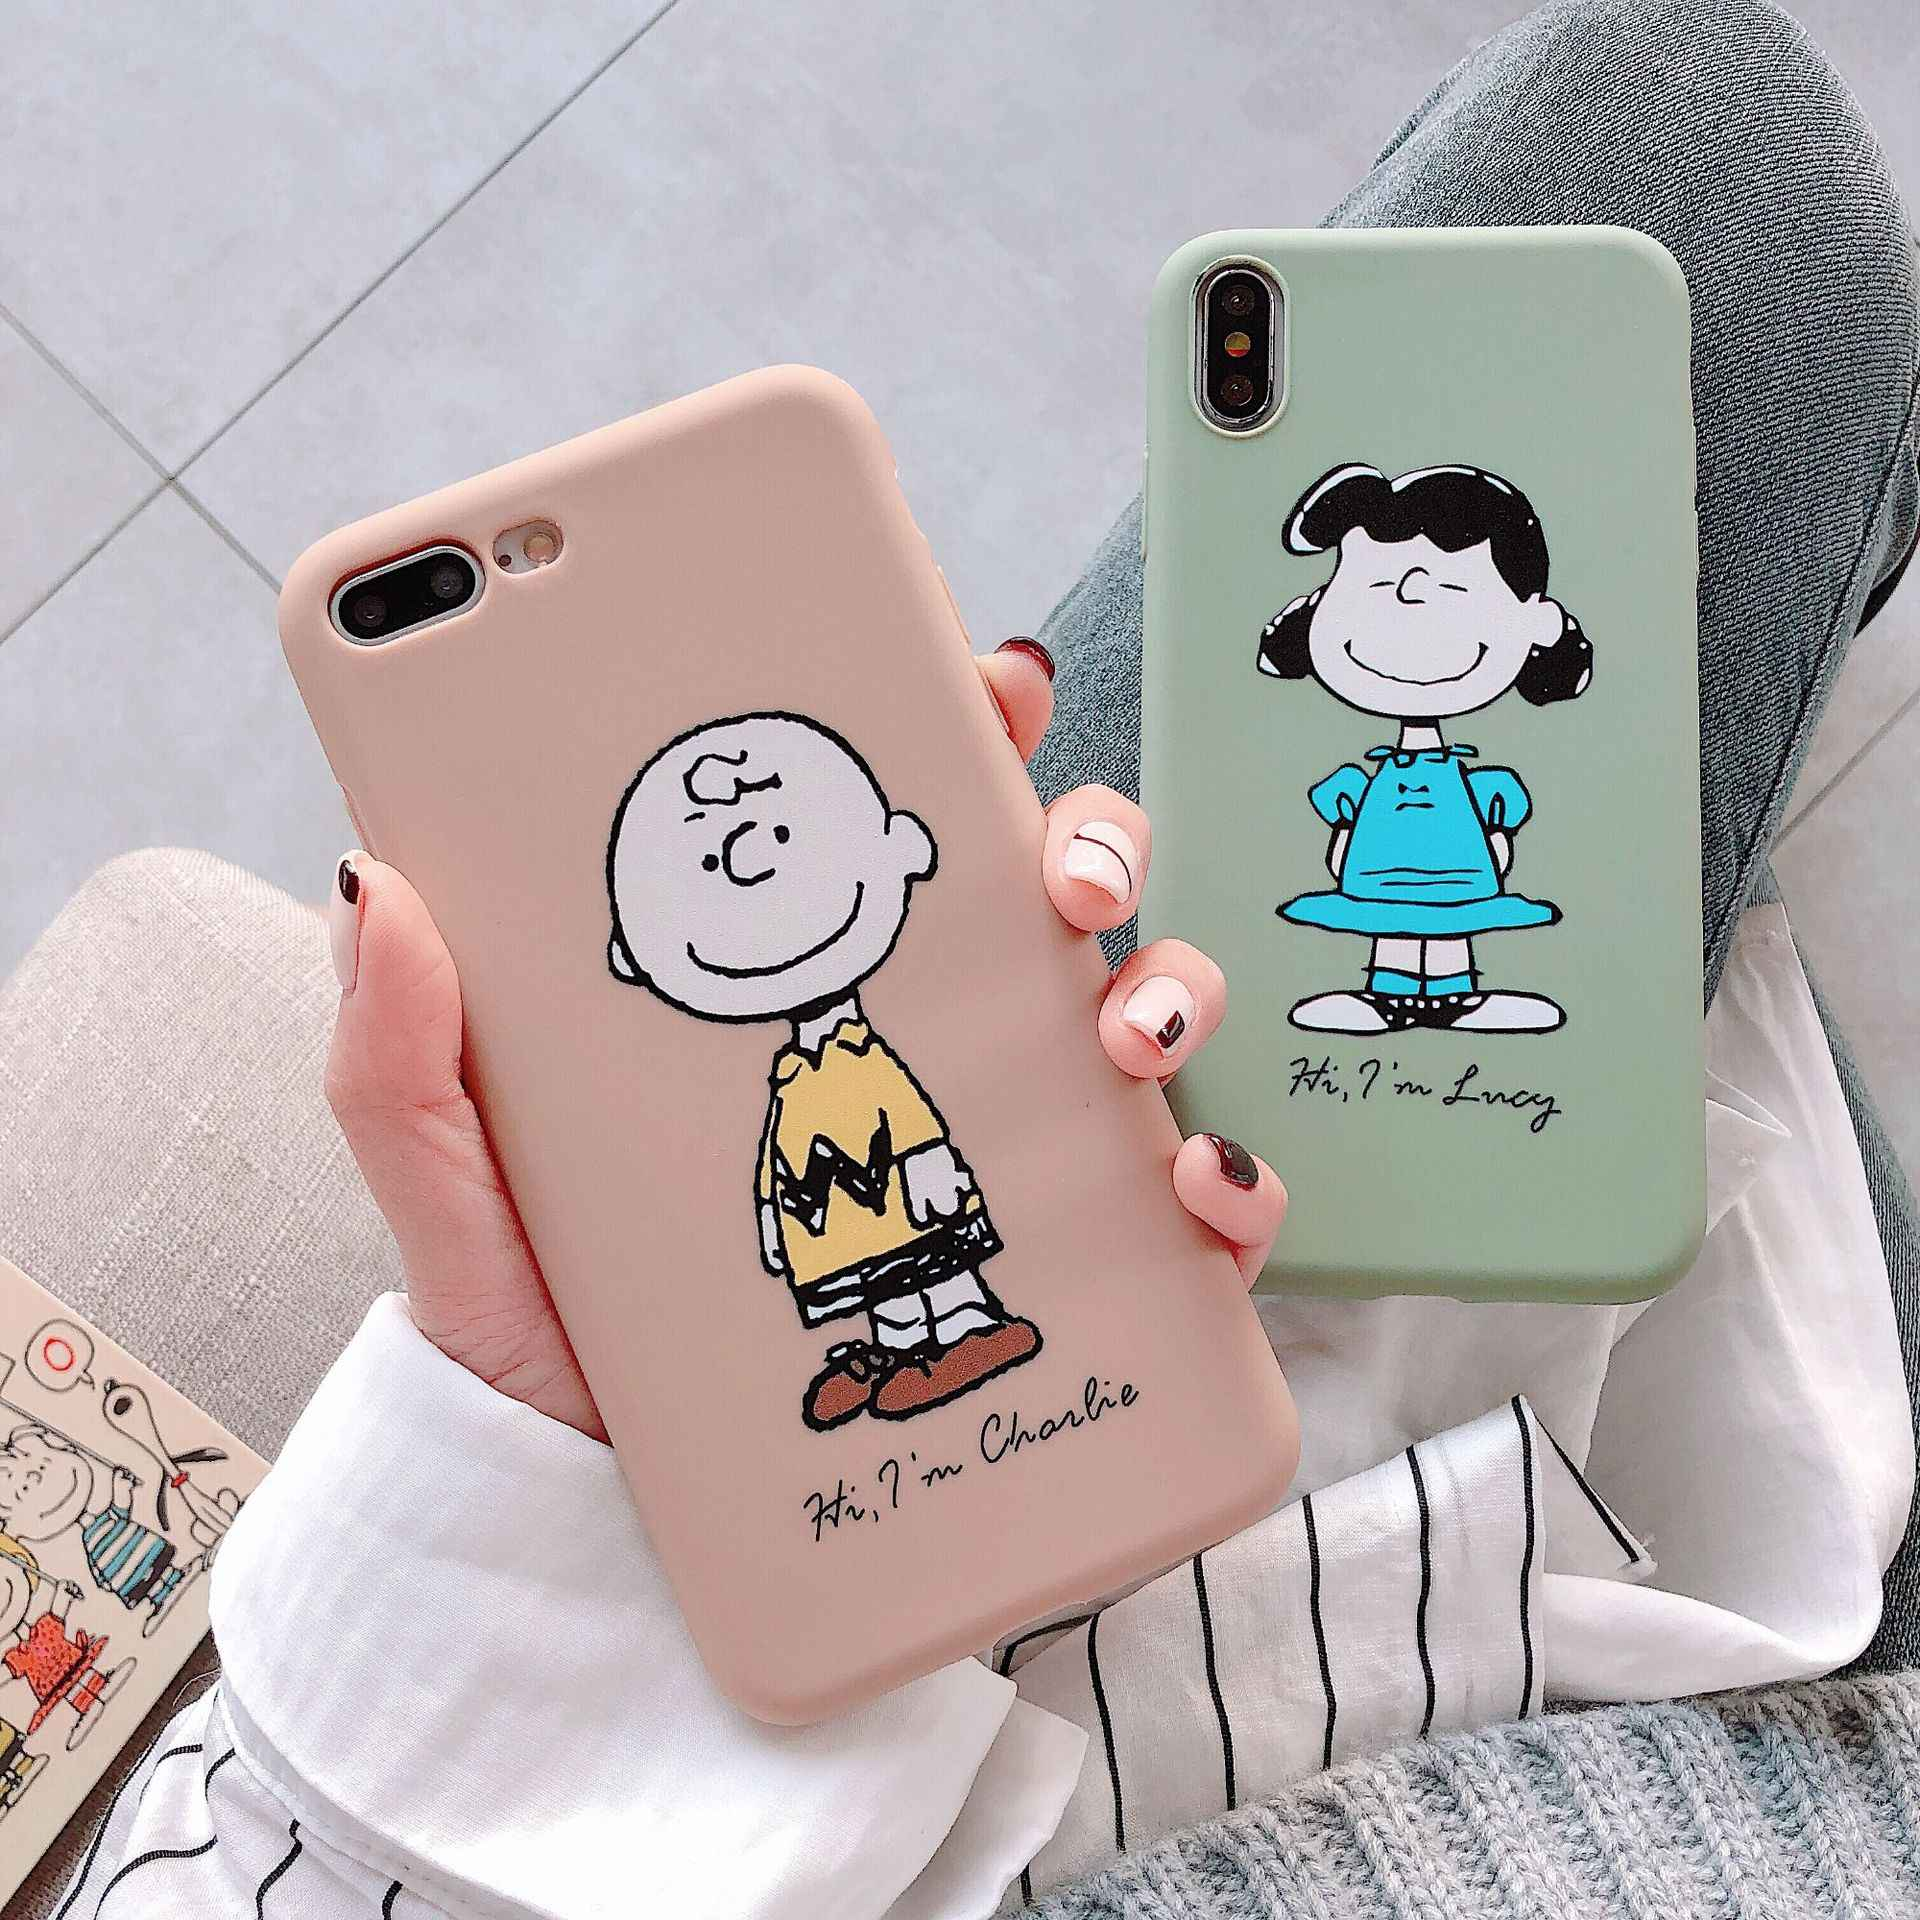 Cute Cartoon Charlie Brown Couple Phone Case For iPhone 7 7 Puls 6 6S 7 8 Puls X Xs XR Xsmax Cases Soft Silicone Cover Coque